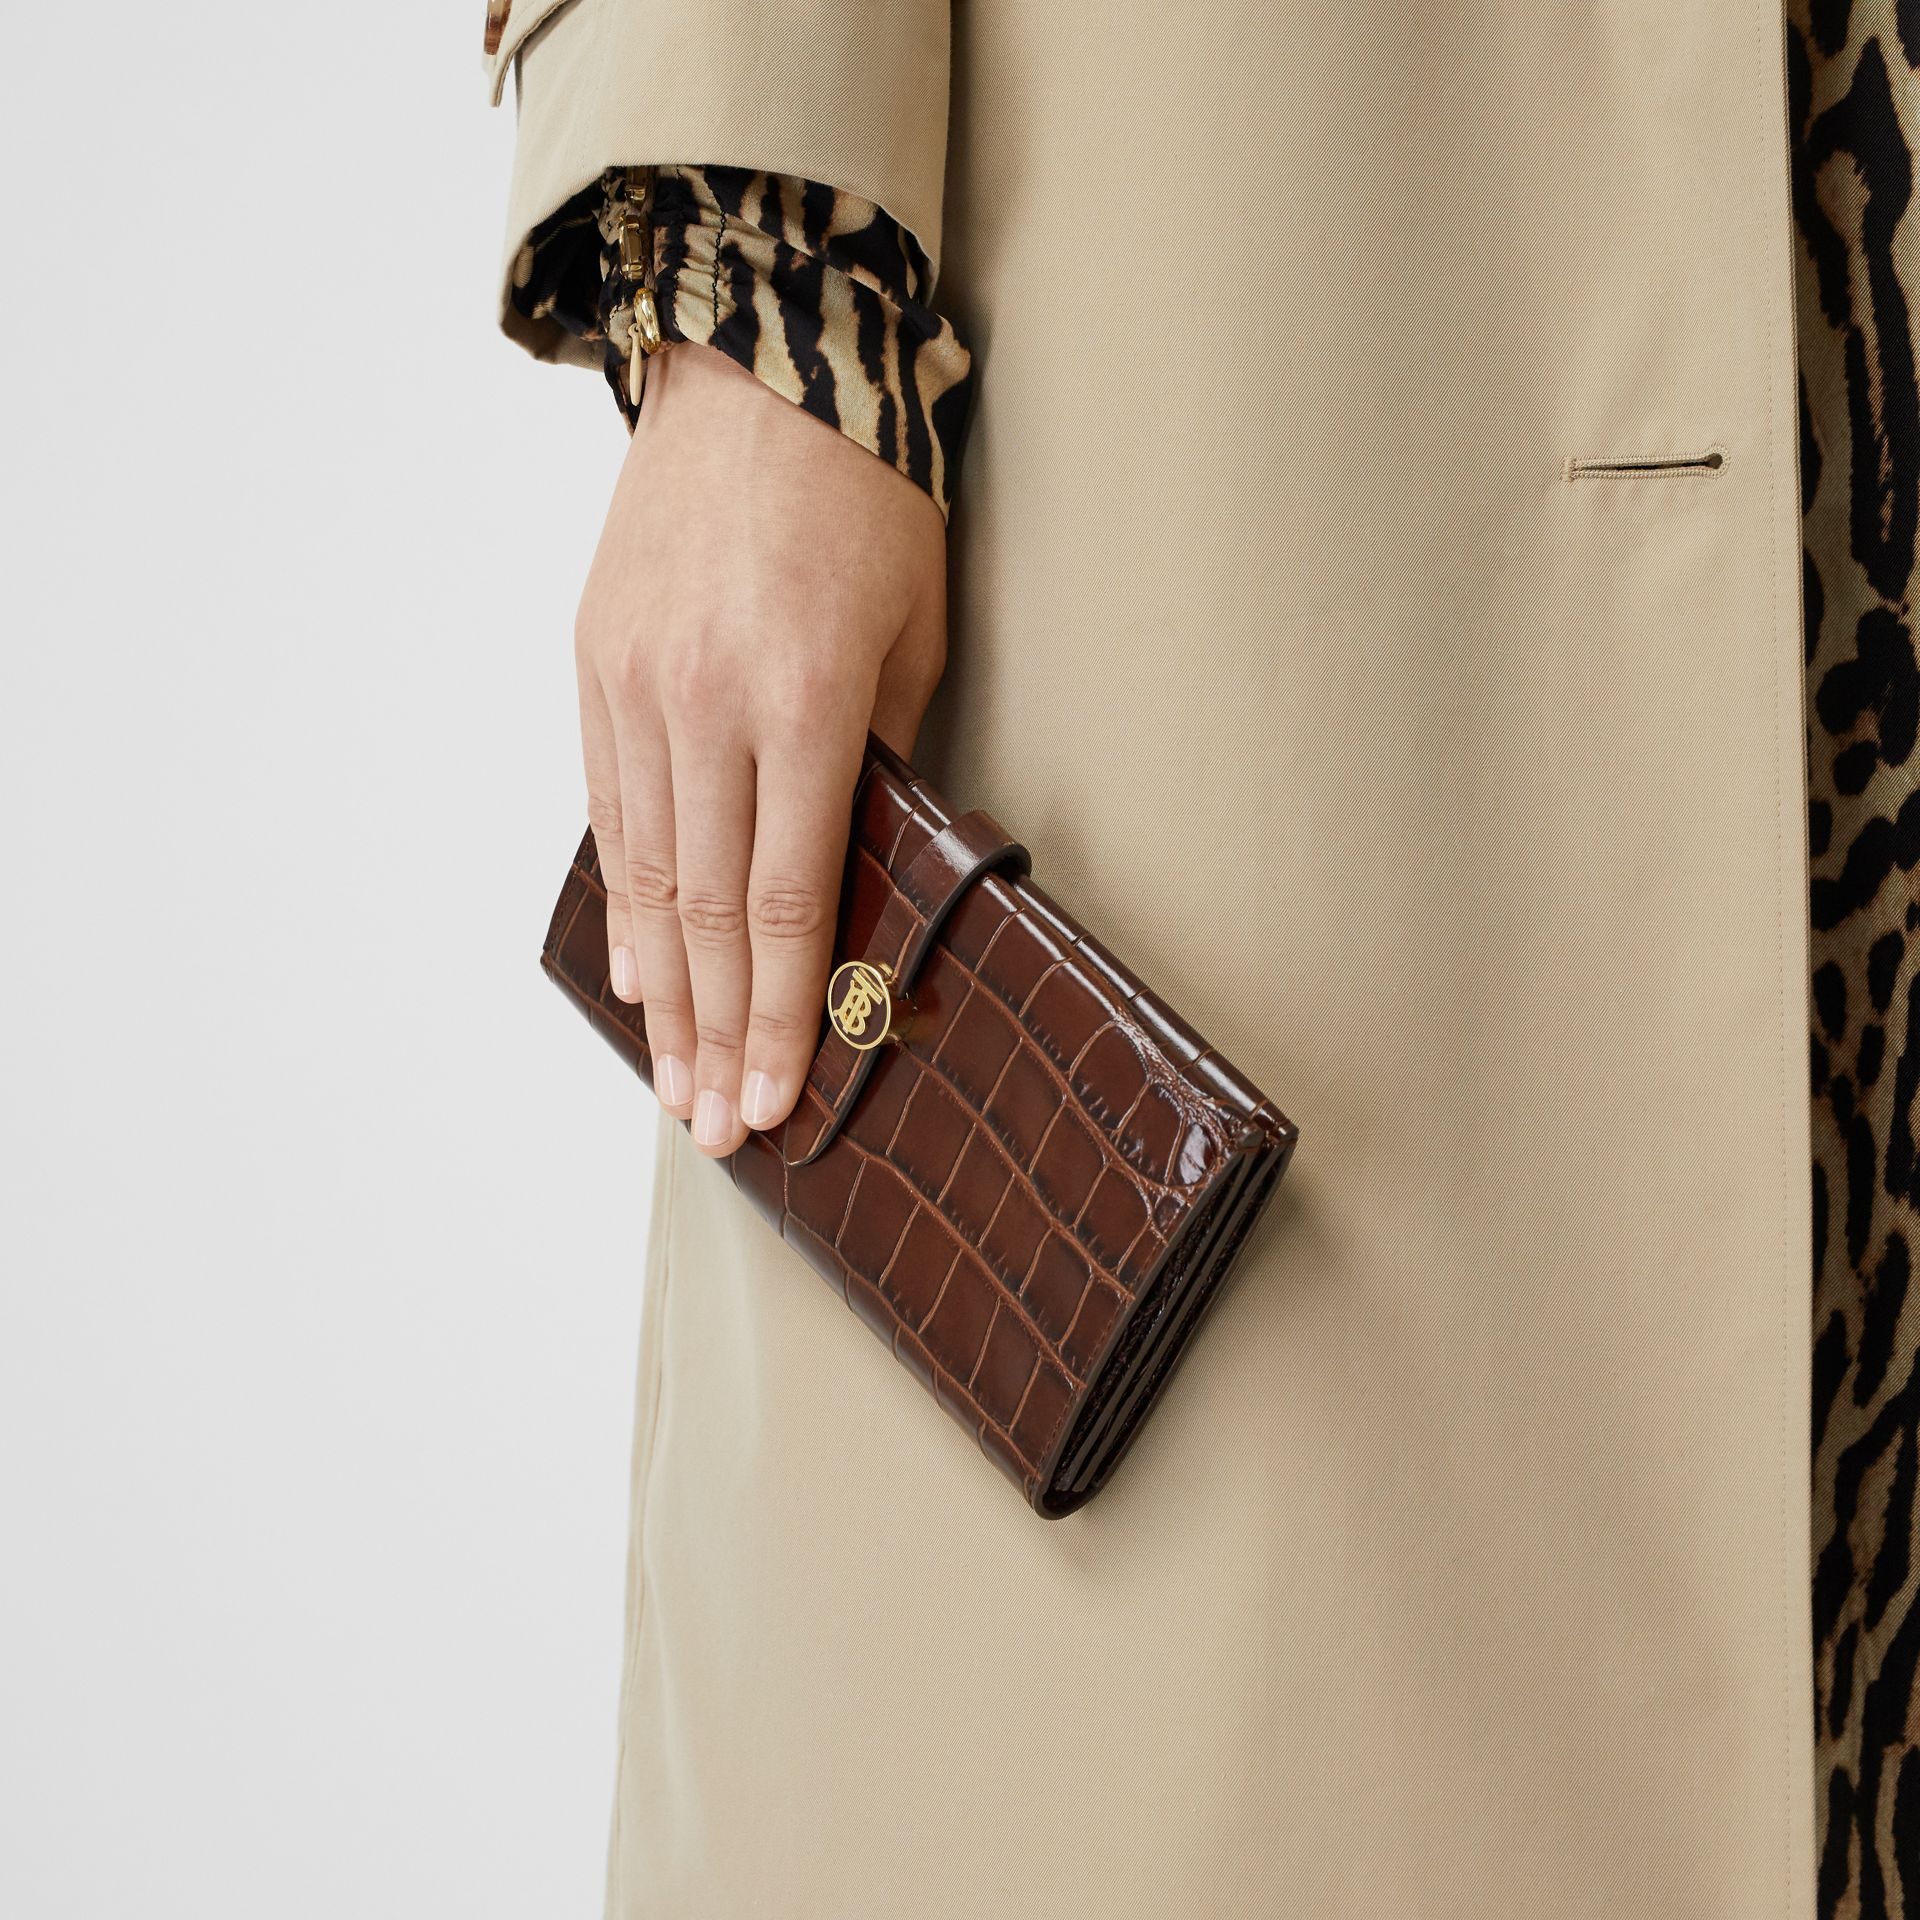 Monogram Motif Embossed Leather Folding Wallet in Tan - Women | Burberry - gallery image 2